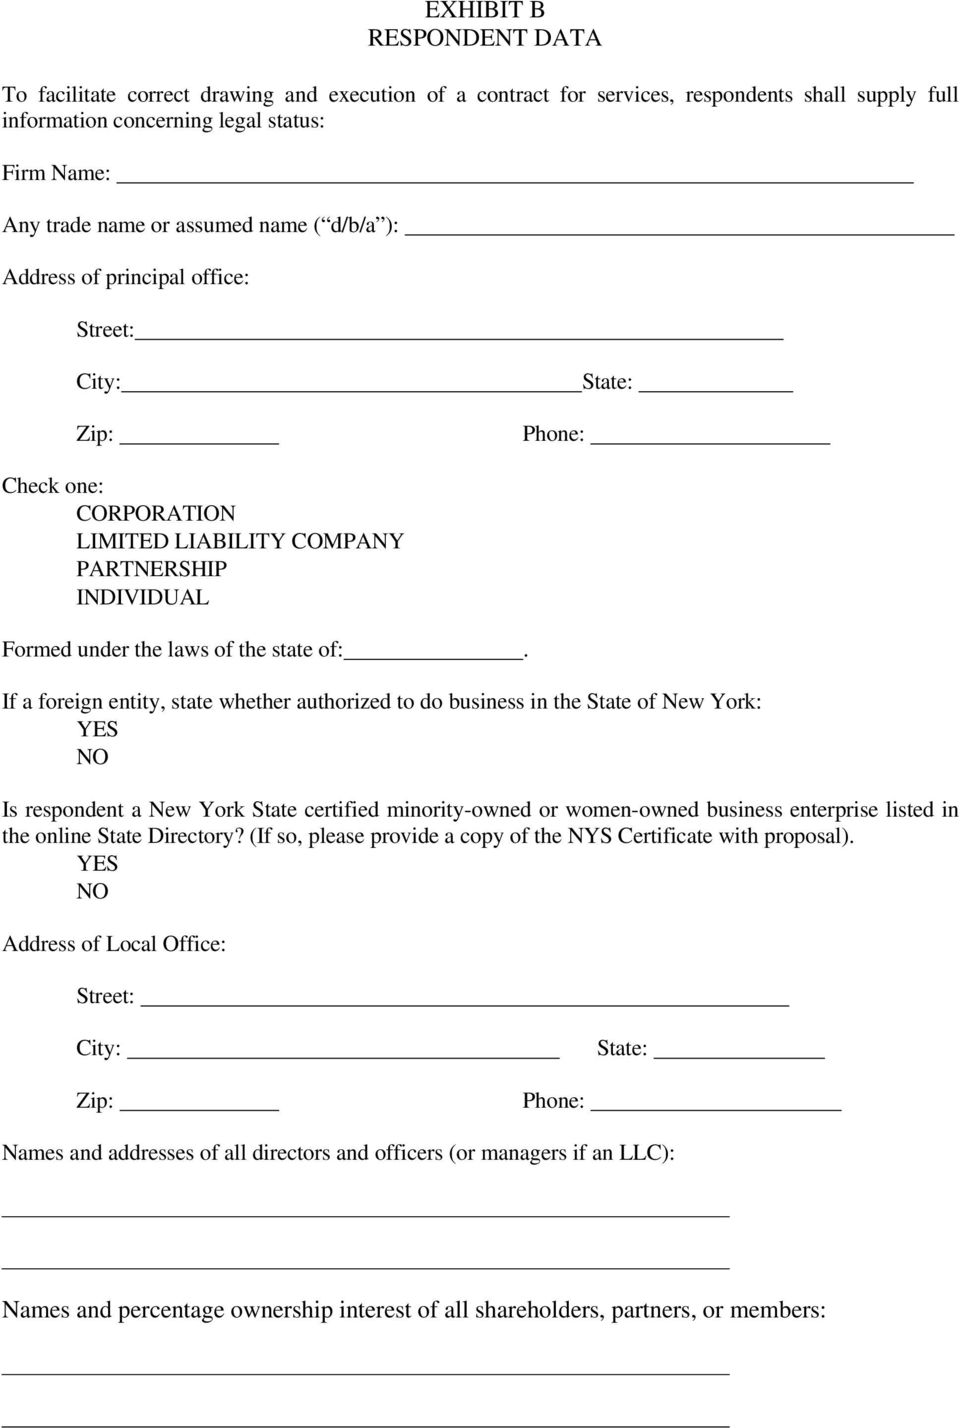 Certificate Of Authority To Do Business In New York - Best Design ...